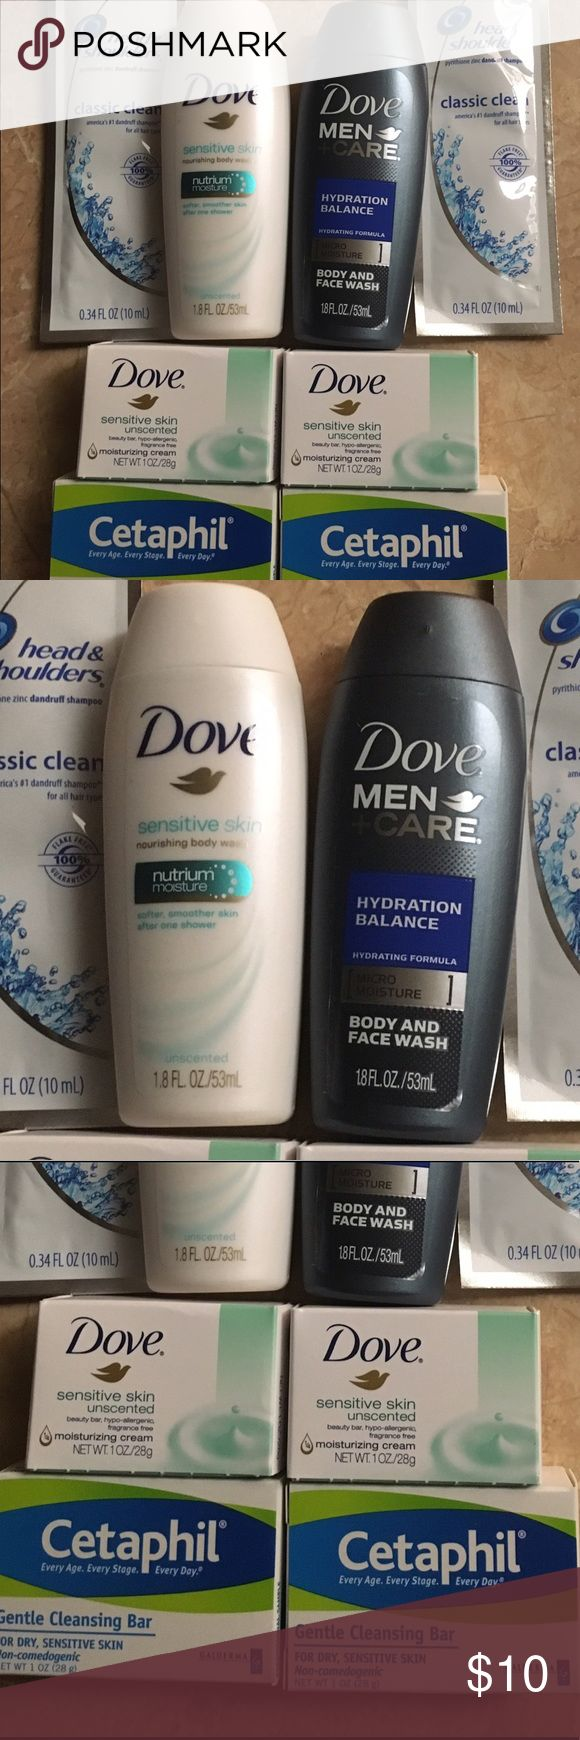 Bundle of Products 2 Head and Shoulders, Dove body wash, Dove body wash for men, 2 mini Dove bars, 2 Cetafil soap bars .  .. .. BUNDLE 4 or More SAVE 20%!!! Spend $50 or more and choose a FREE GIFT!!!!Choose your free gift by commenting on the item..... items with a 🎁 qualify as a free gift! Other